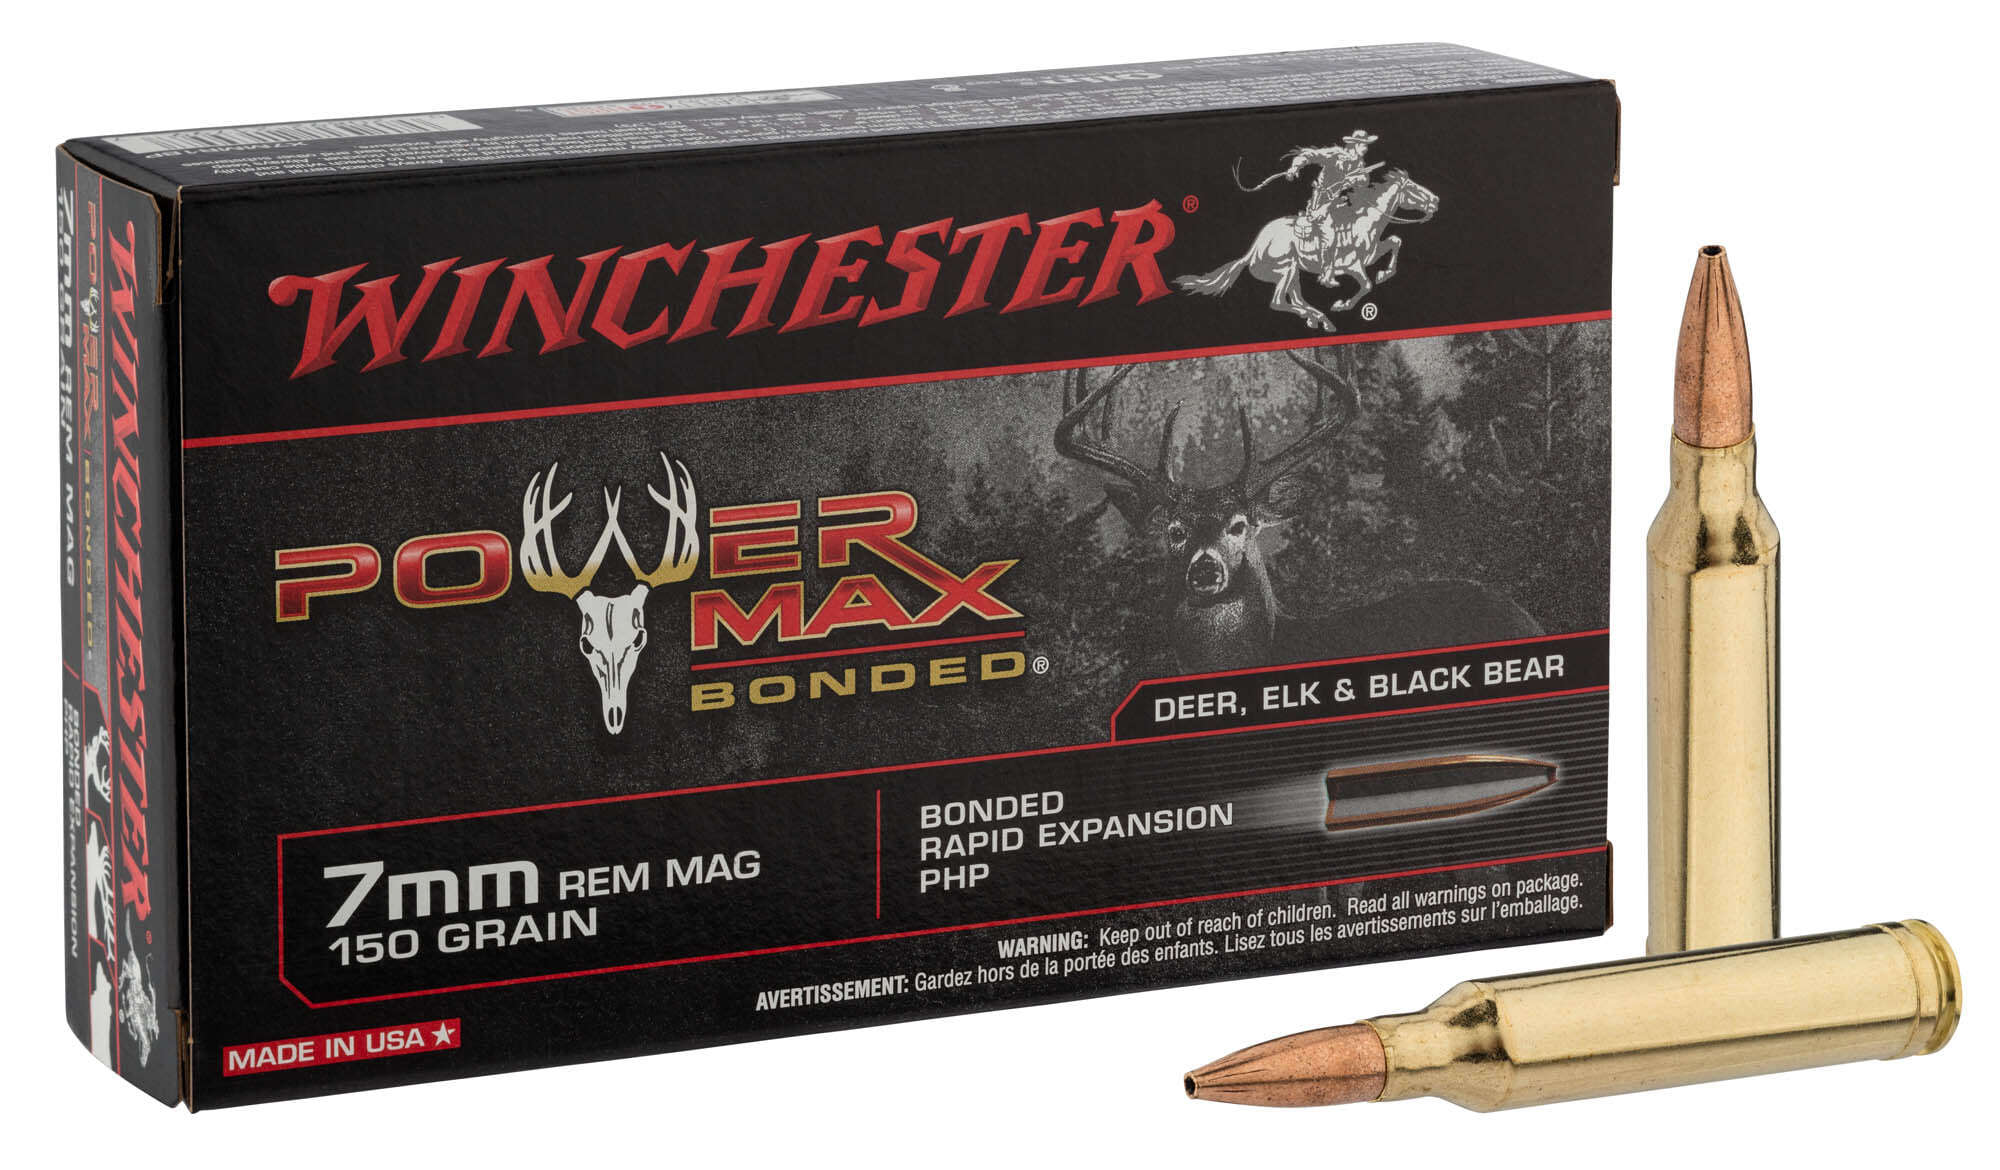 BW7001-4-Winchester cal. 7 mm Rem Mag - BW7022